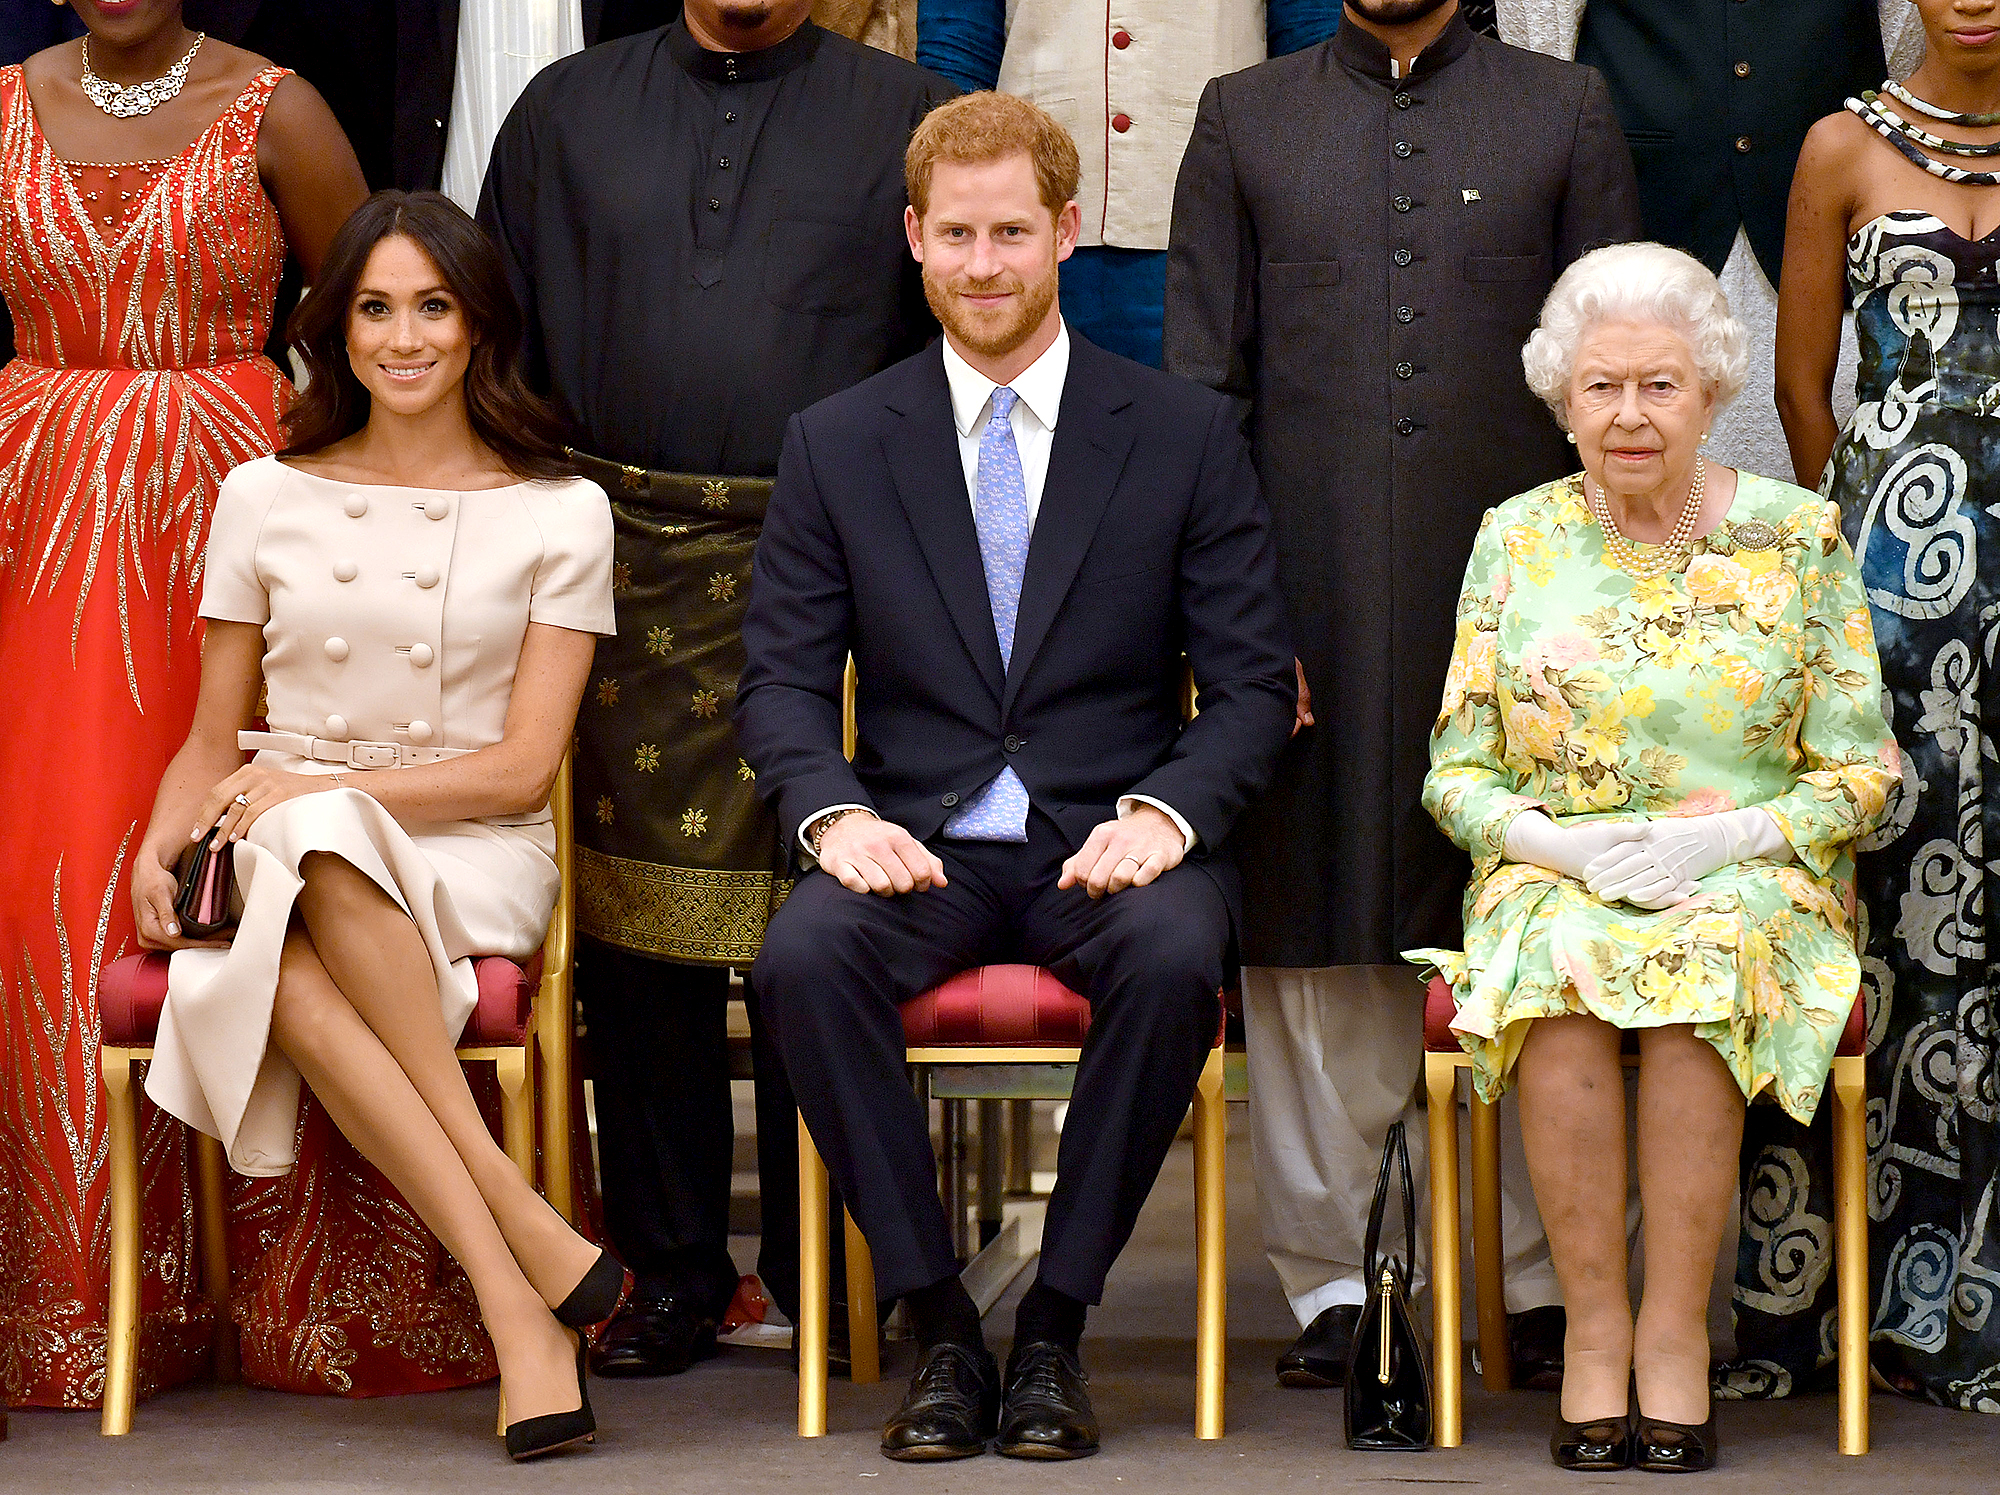 Prince-Harry-and-Duchess-Meghan-Didn't-Receive-'Official-Blessing'-From-Queen